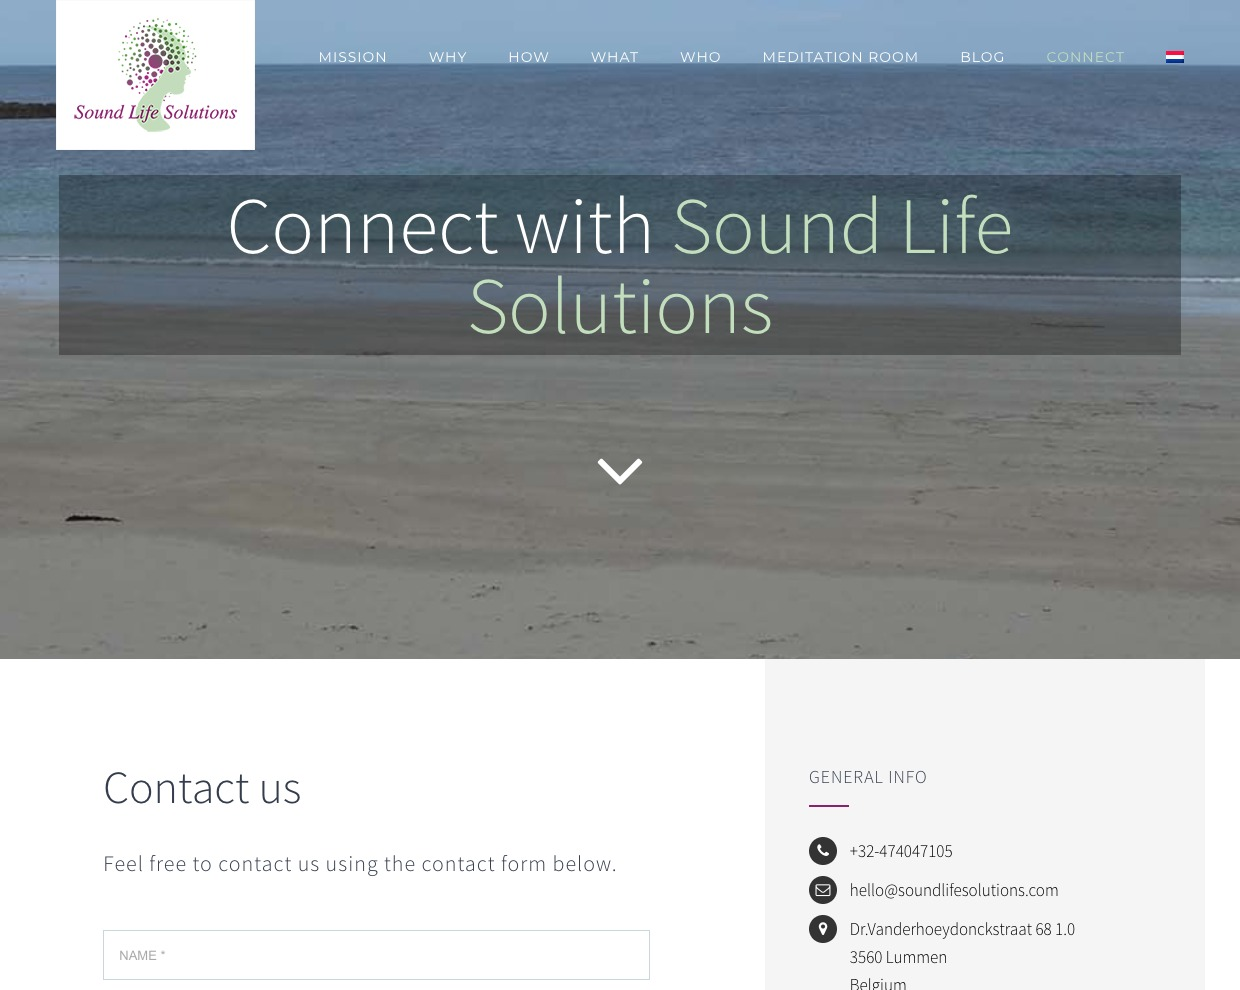 Sound Life Solutions